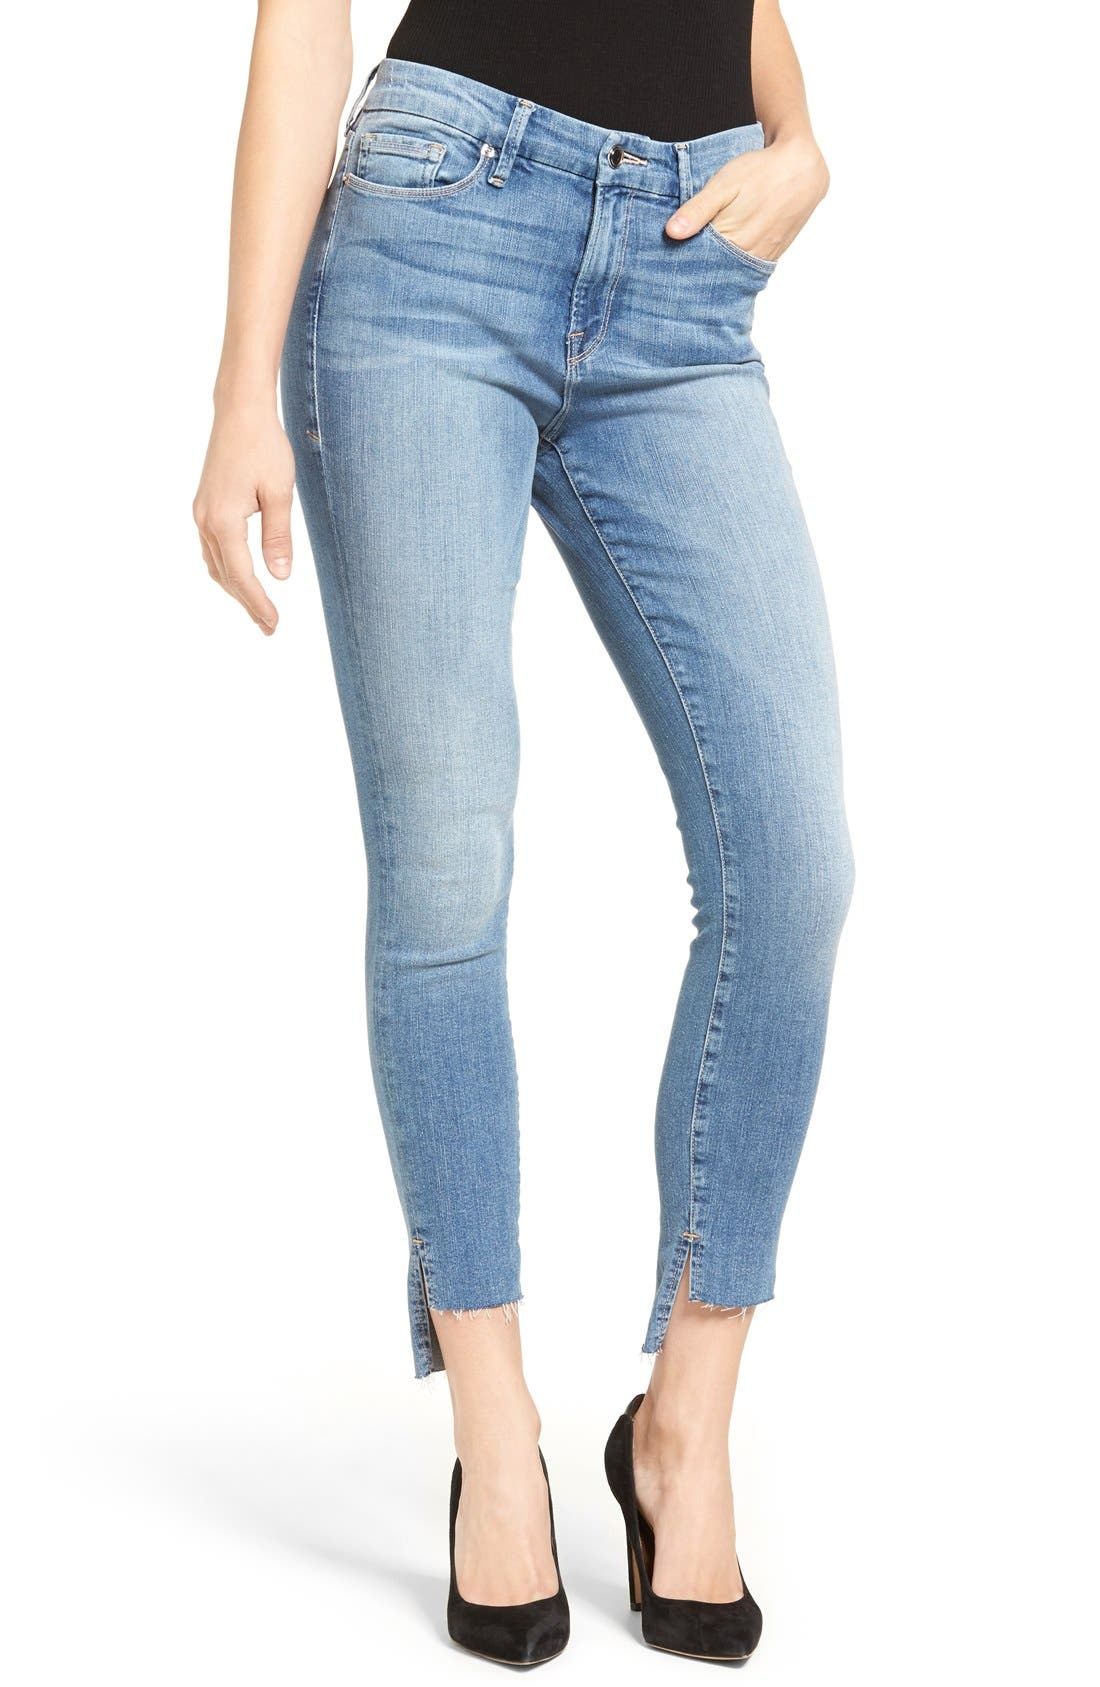 Alternate Image 1 Selected - Good American Good Legs High Waist Skinny Jeans (Blue 007) (Extended Sizes)